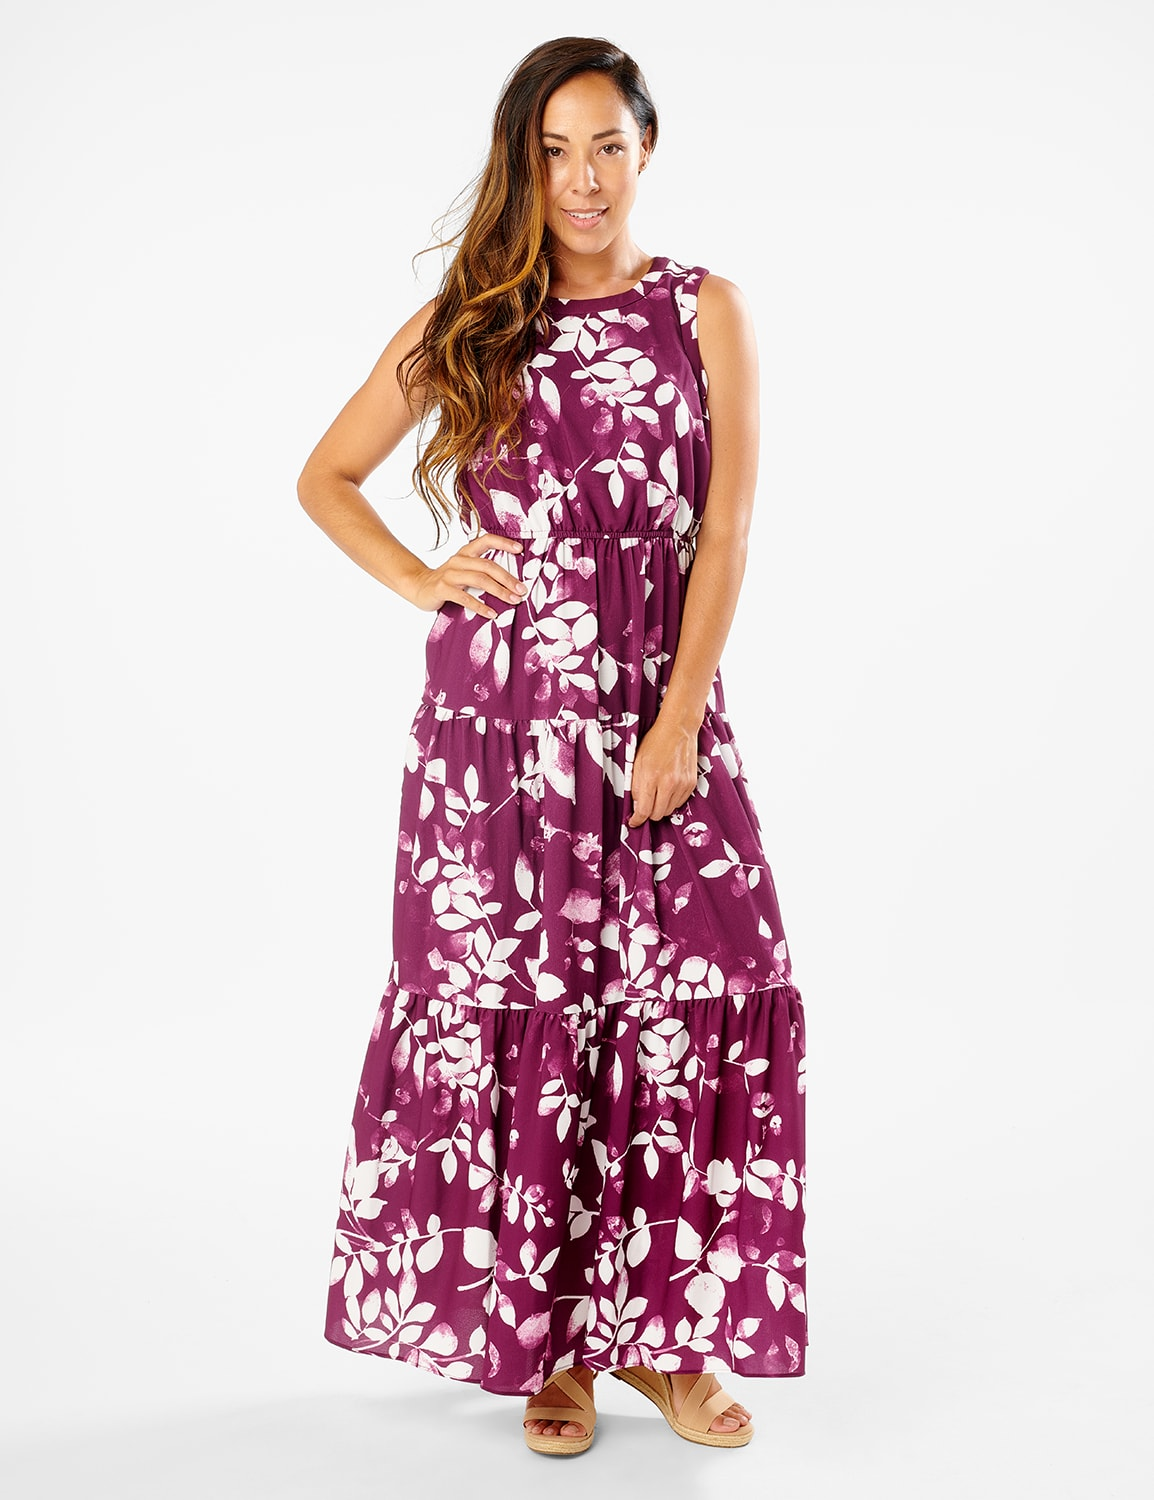 Leaf Print Tiered Maxi Dress - Pickled Beet/Ivory - Front